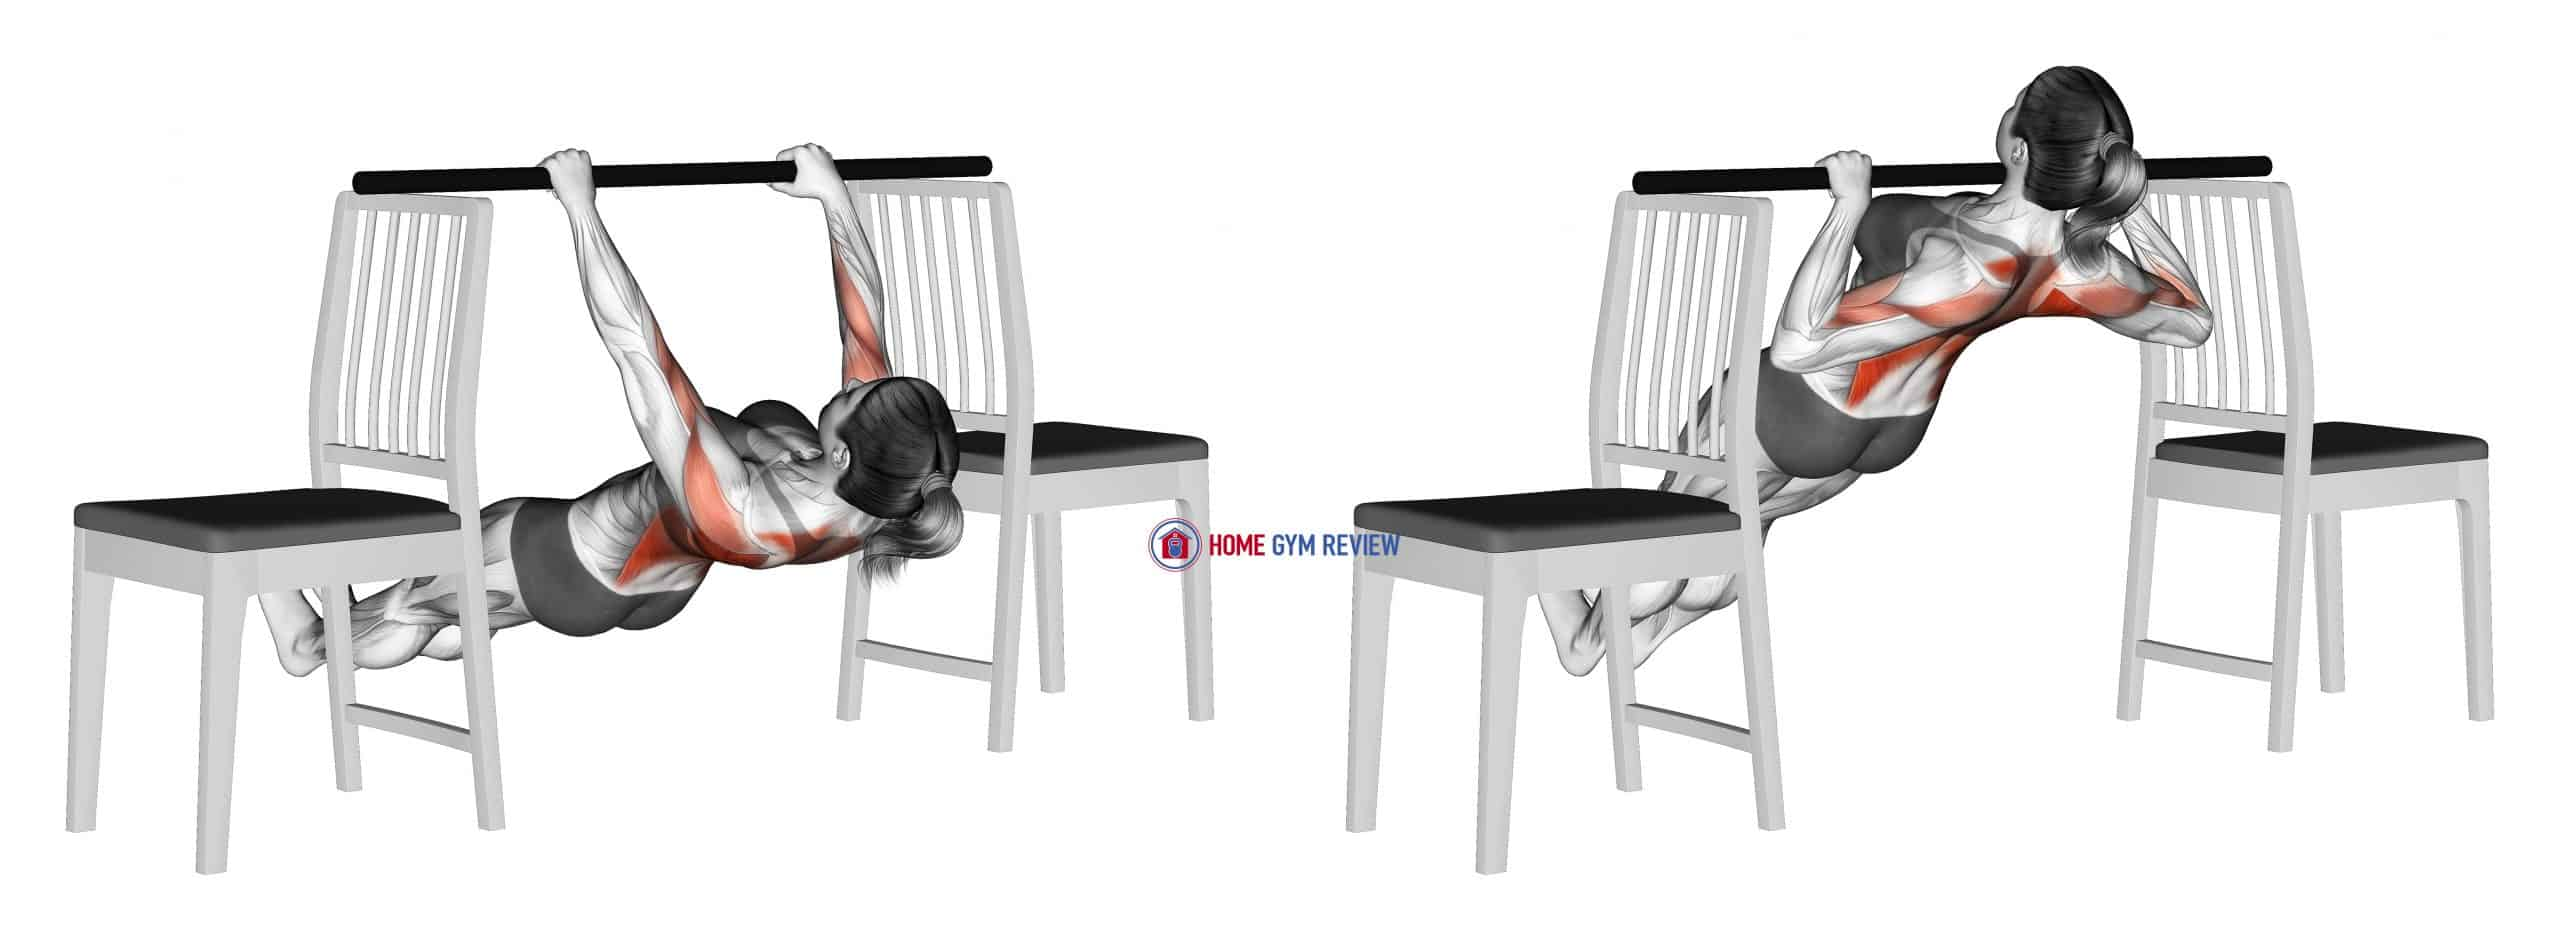 Inverted Row between Chairs (female)